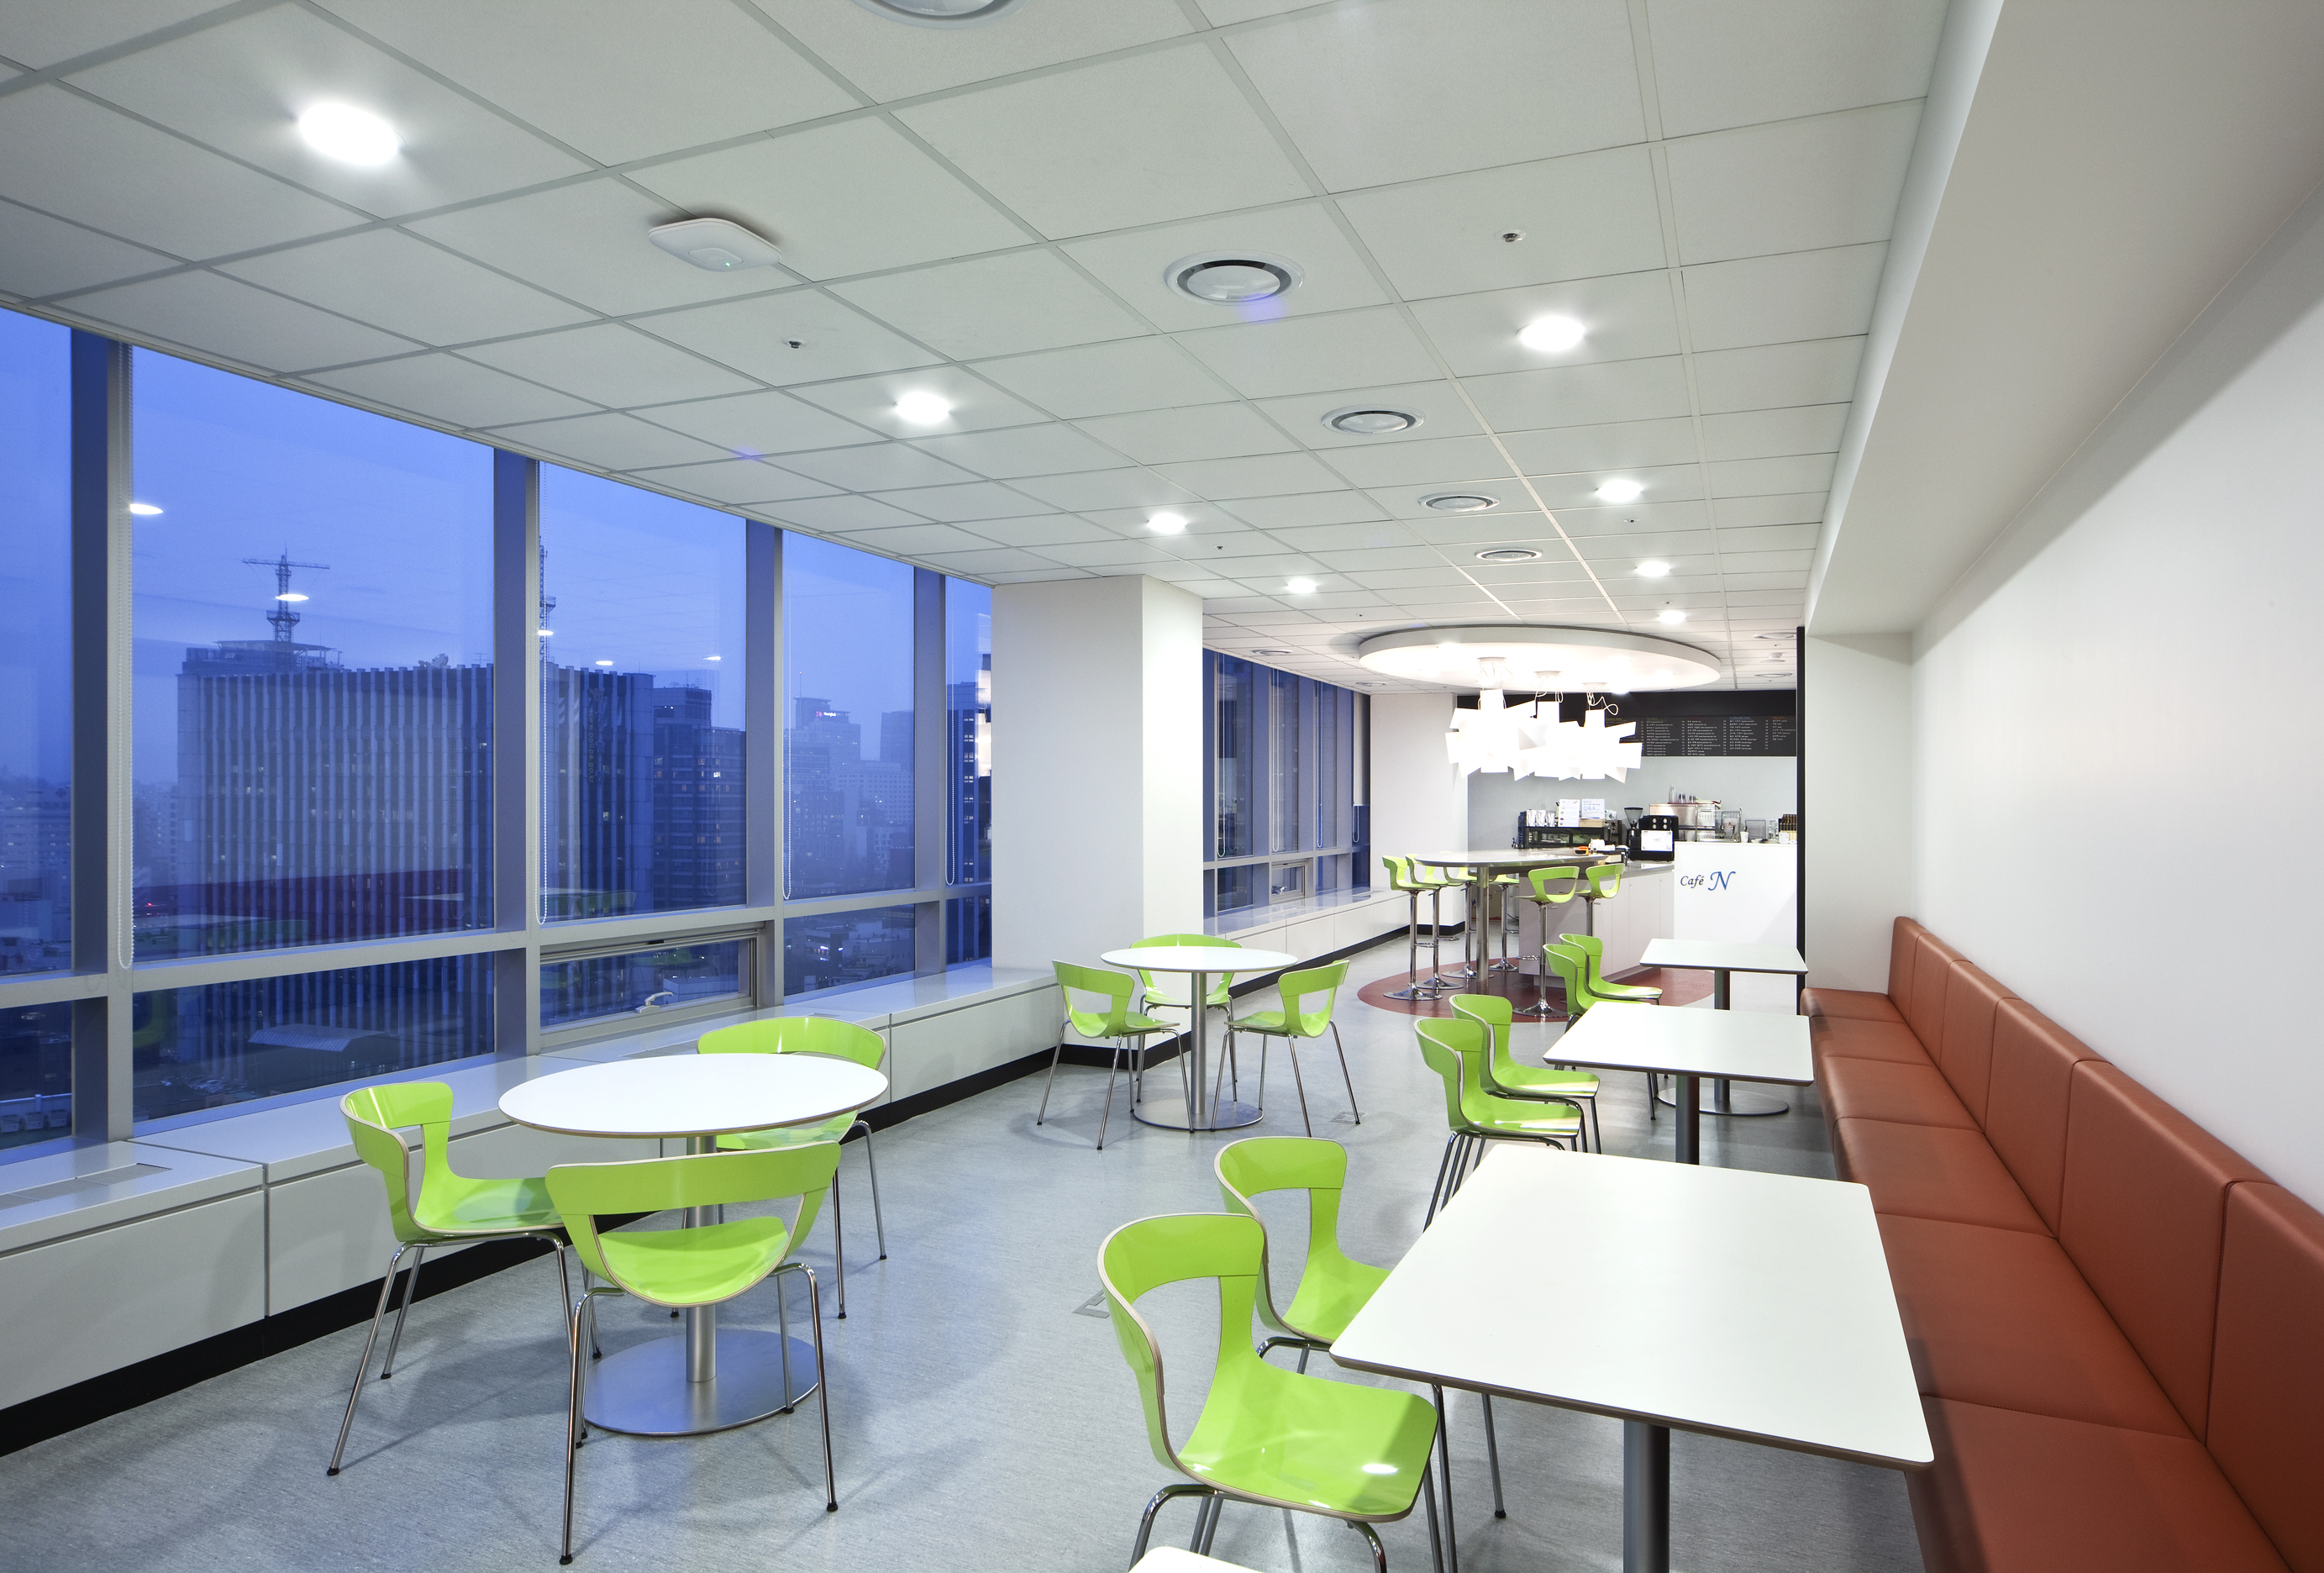 Lunch Room 2